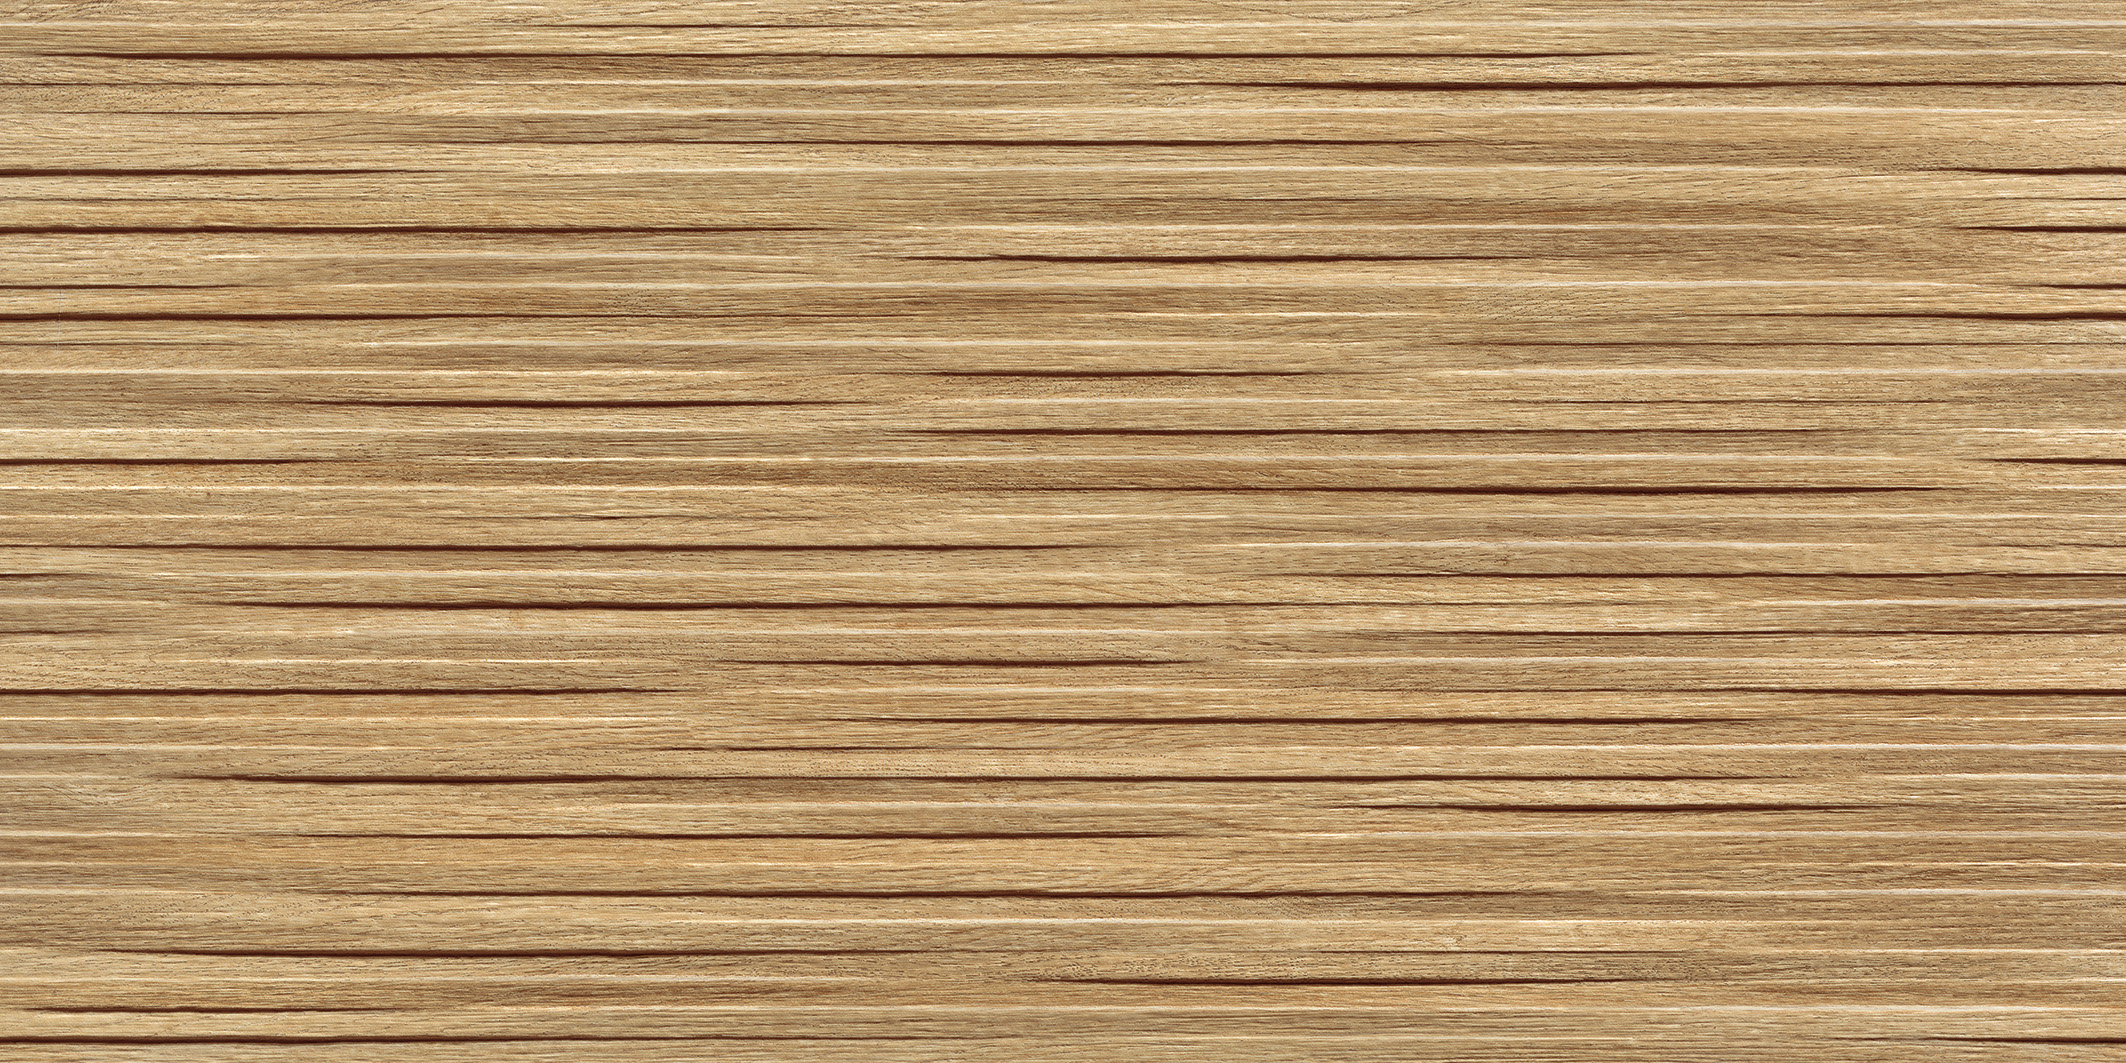 AtlasConcorde_NID_Natural-Whisky_3D_Wooden_Mix_40x80_8NWN